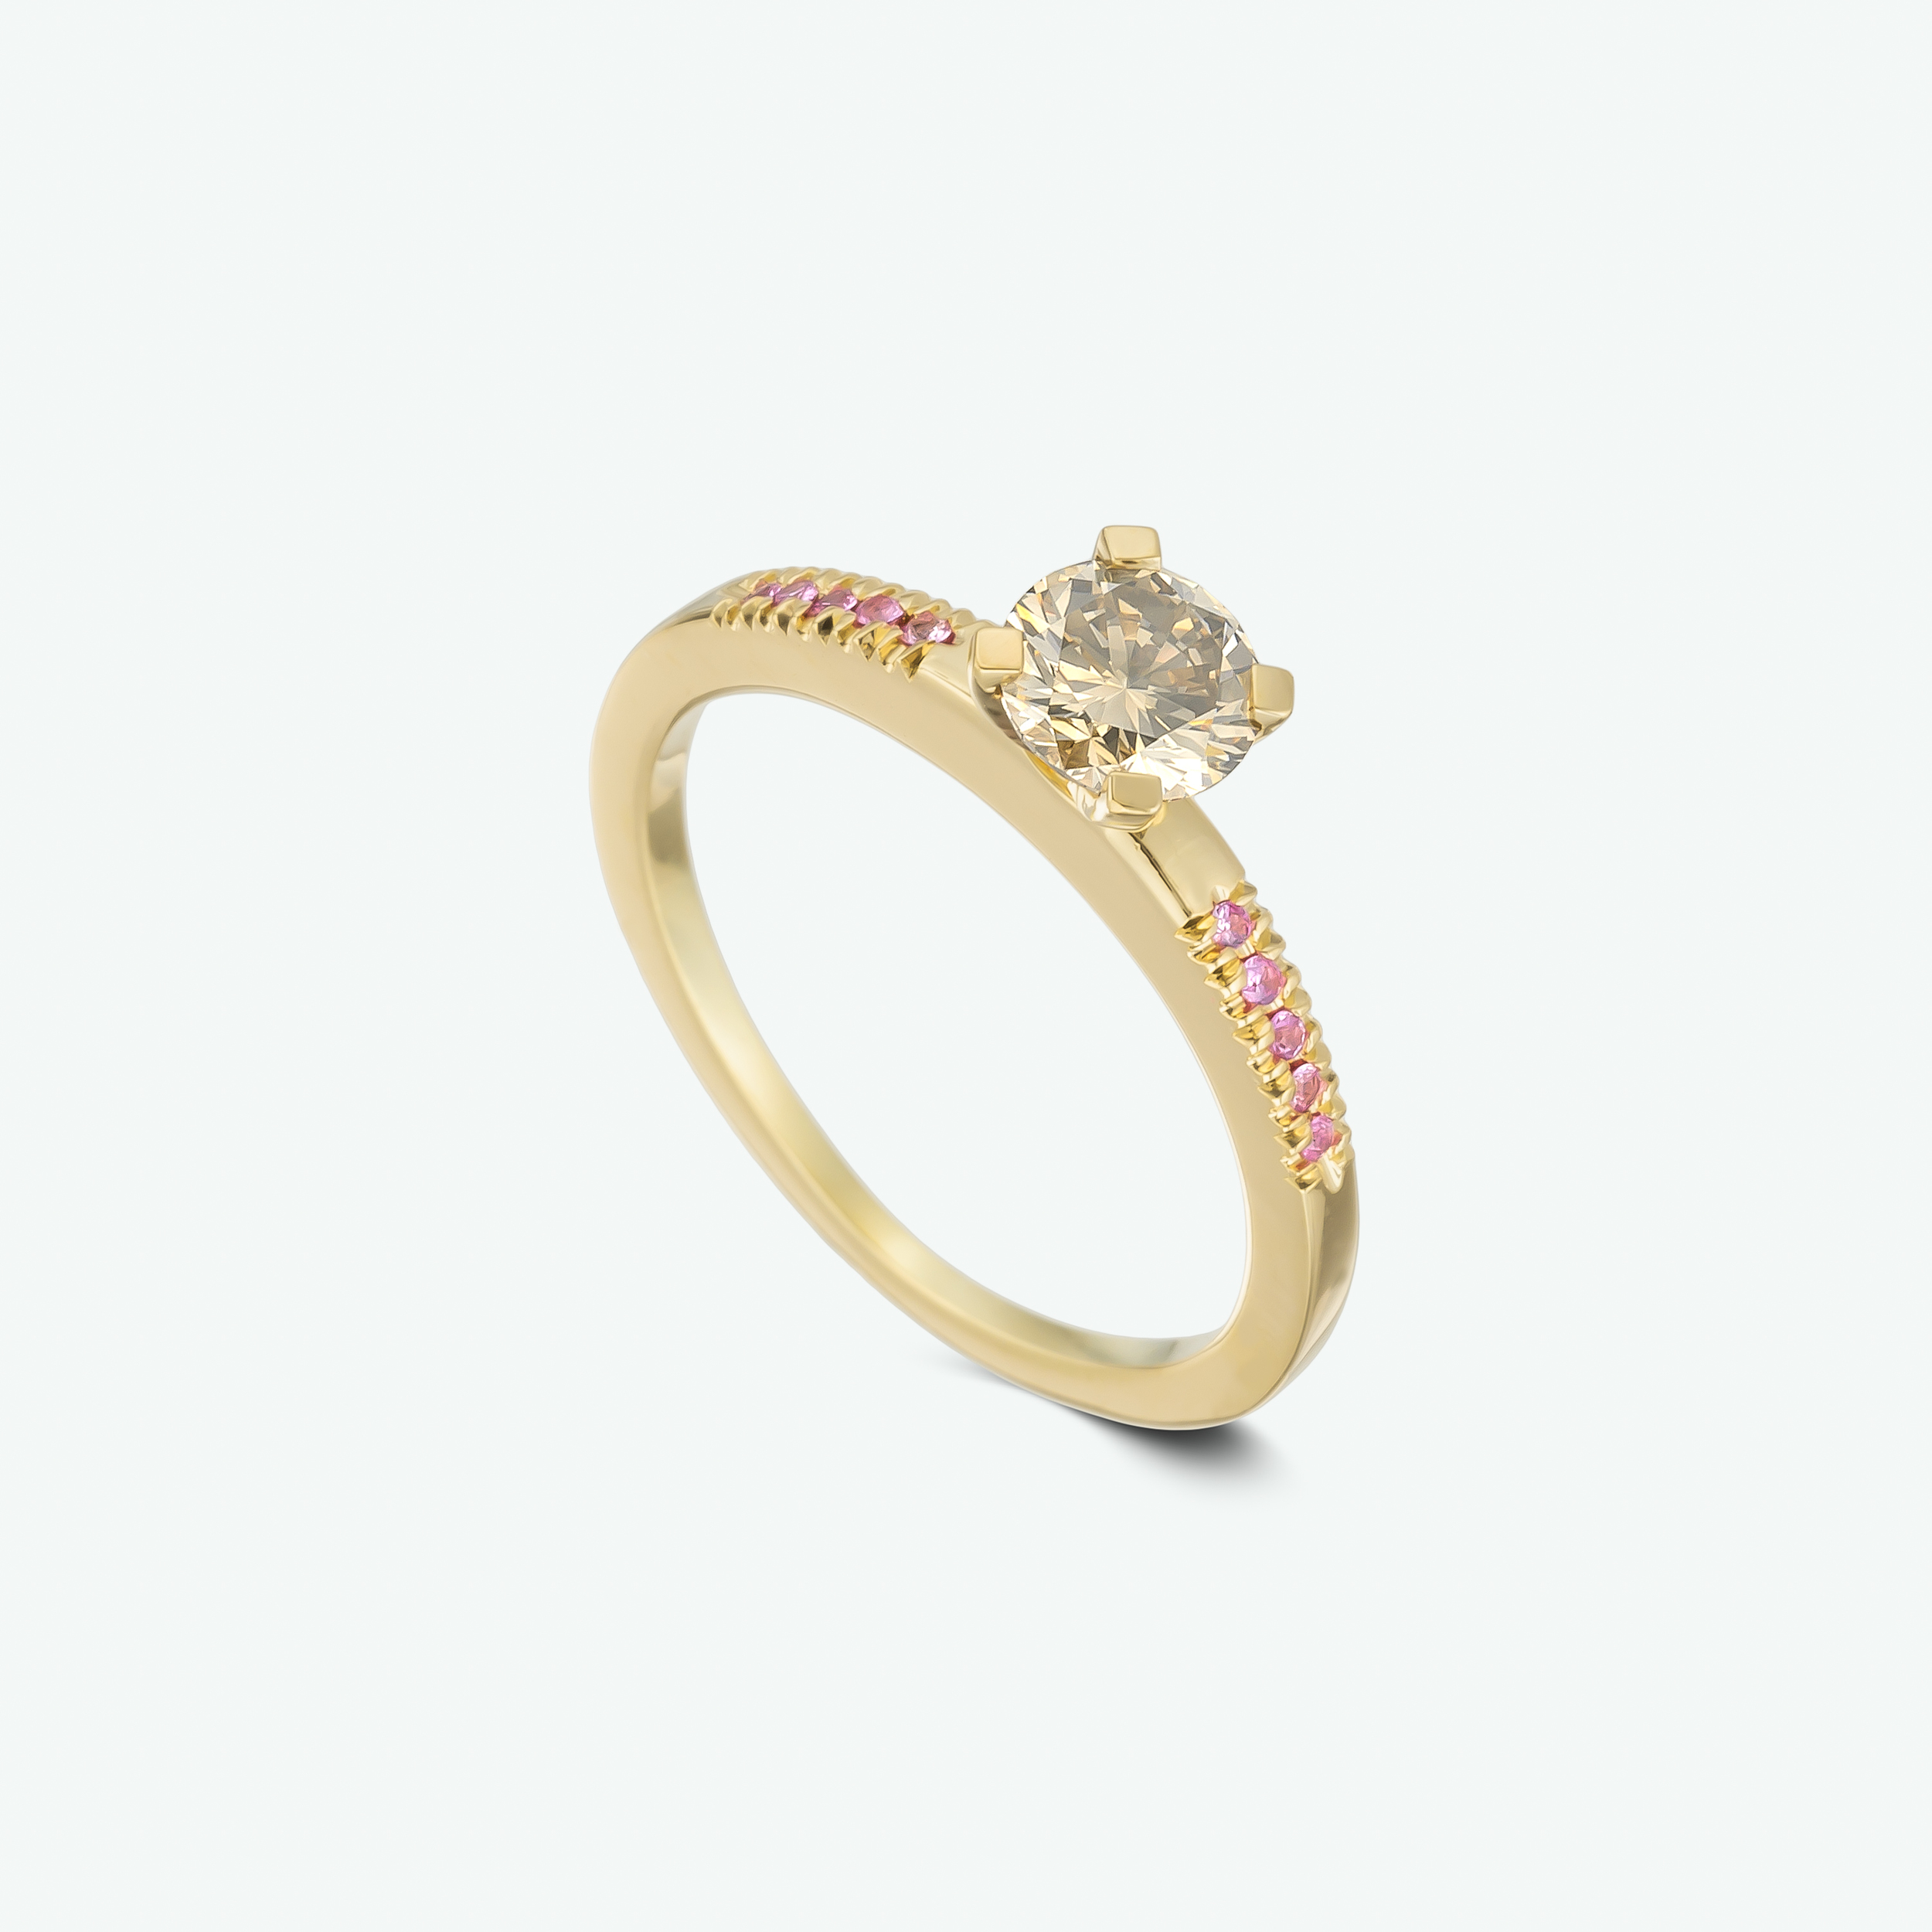 One of a kind and unique 14k yellow gold engagement ring set with a stunning champagne diamond and brilliant pink sapphires. CD: 0.60 ct. PS: 0.06 ct.